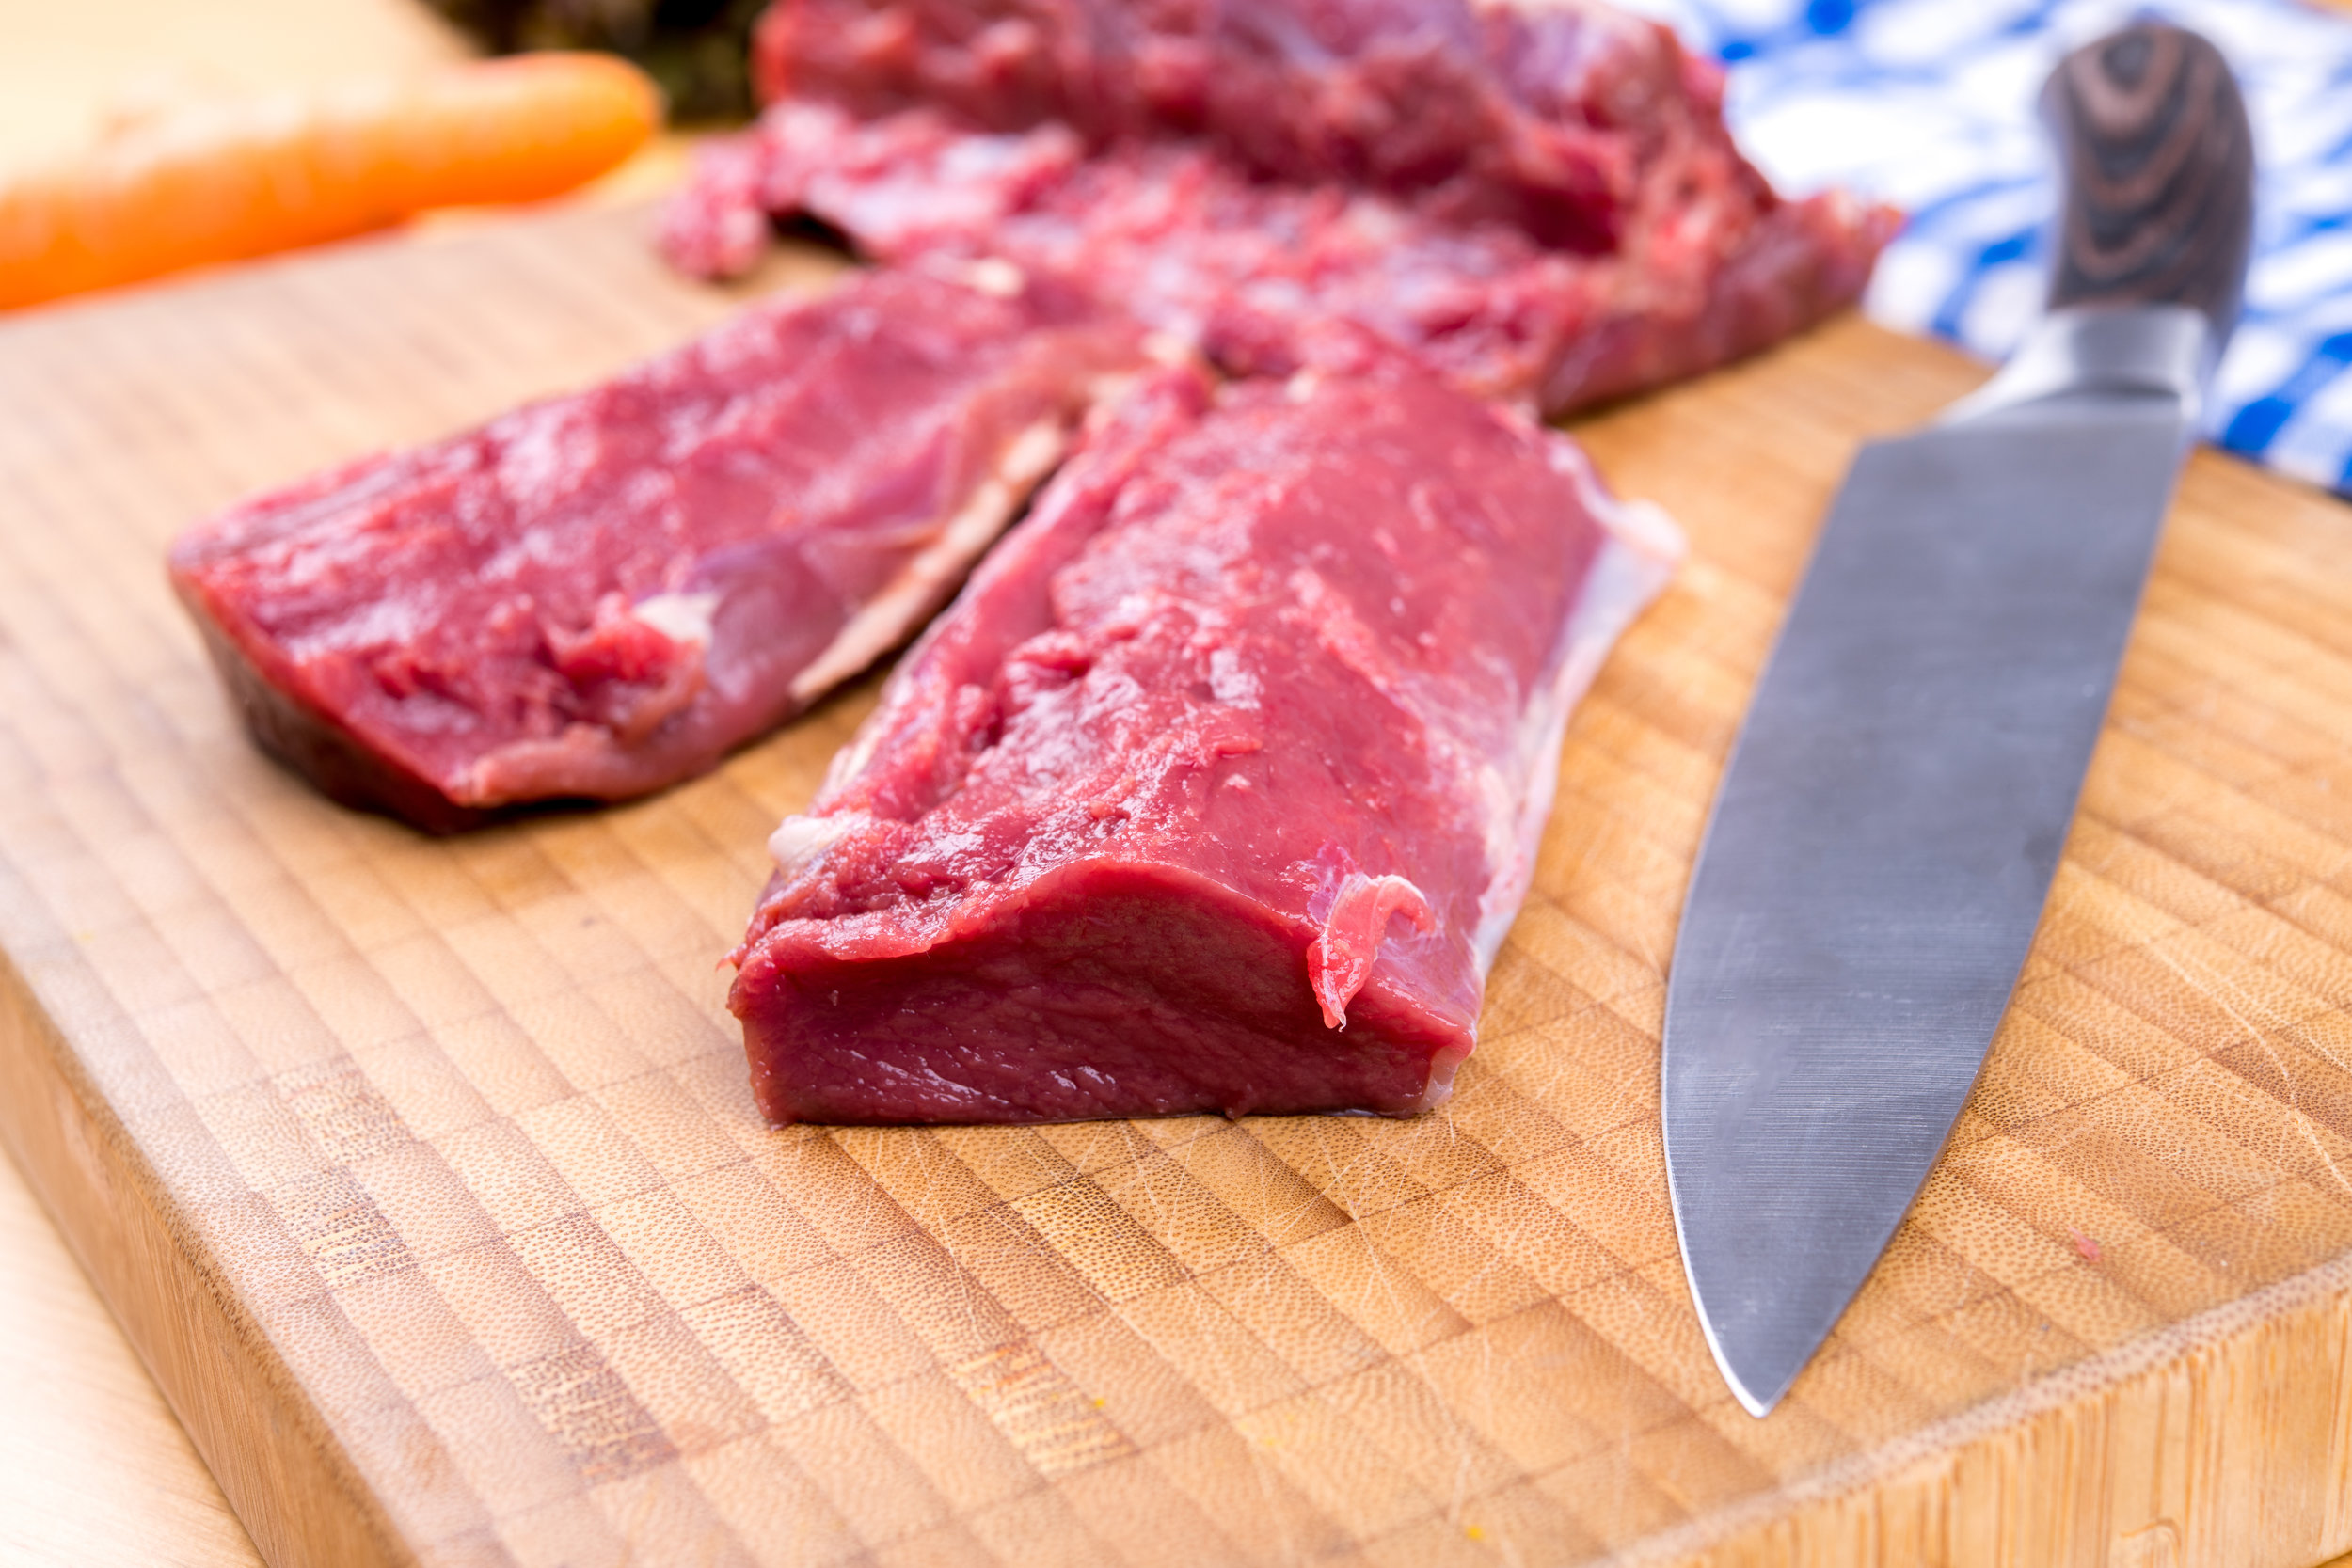 Processing Game Meat Safely